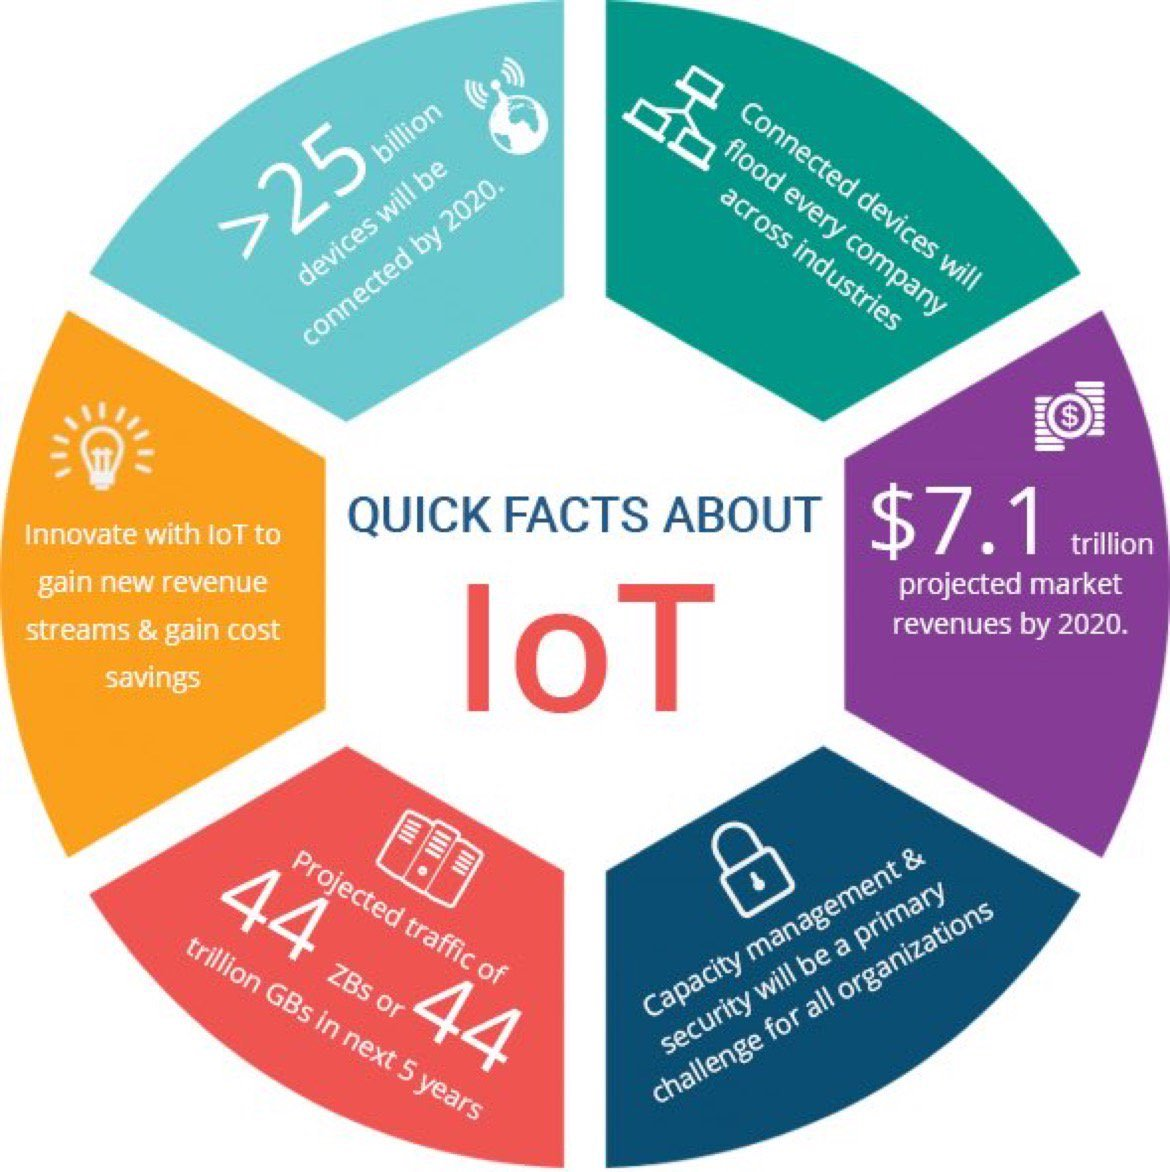 test Twitter Media - IAM Platform Curated Retweet:  Via: https://t.co/pD8qfxOJ2v  Quick facts about #IoT #InternetOfThings  #BigData #DataScience #AI  #DigitalTransformation #ArtificialIntelligence  #MachineLearning #DeepLearning https://t.co/Ef8kMoB9WG  #IAMPlatform #TopInfluence #InternetOfThings